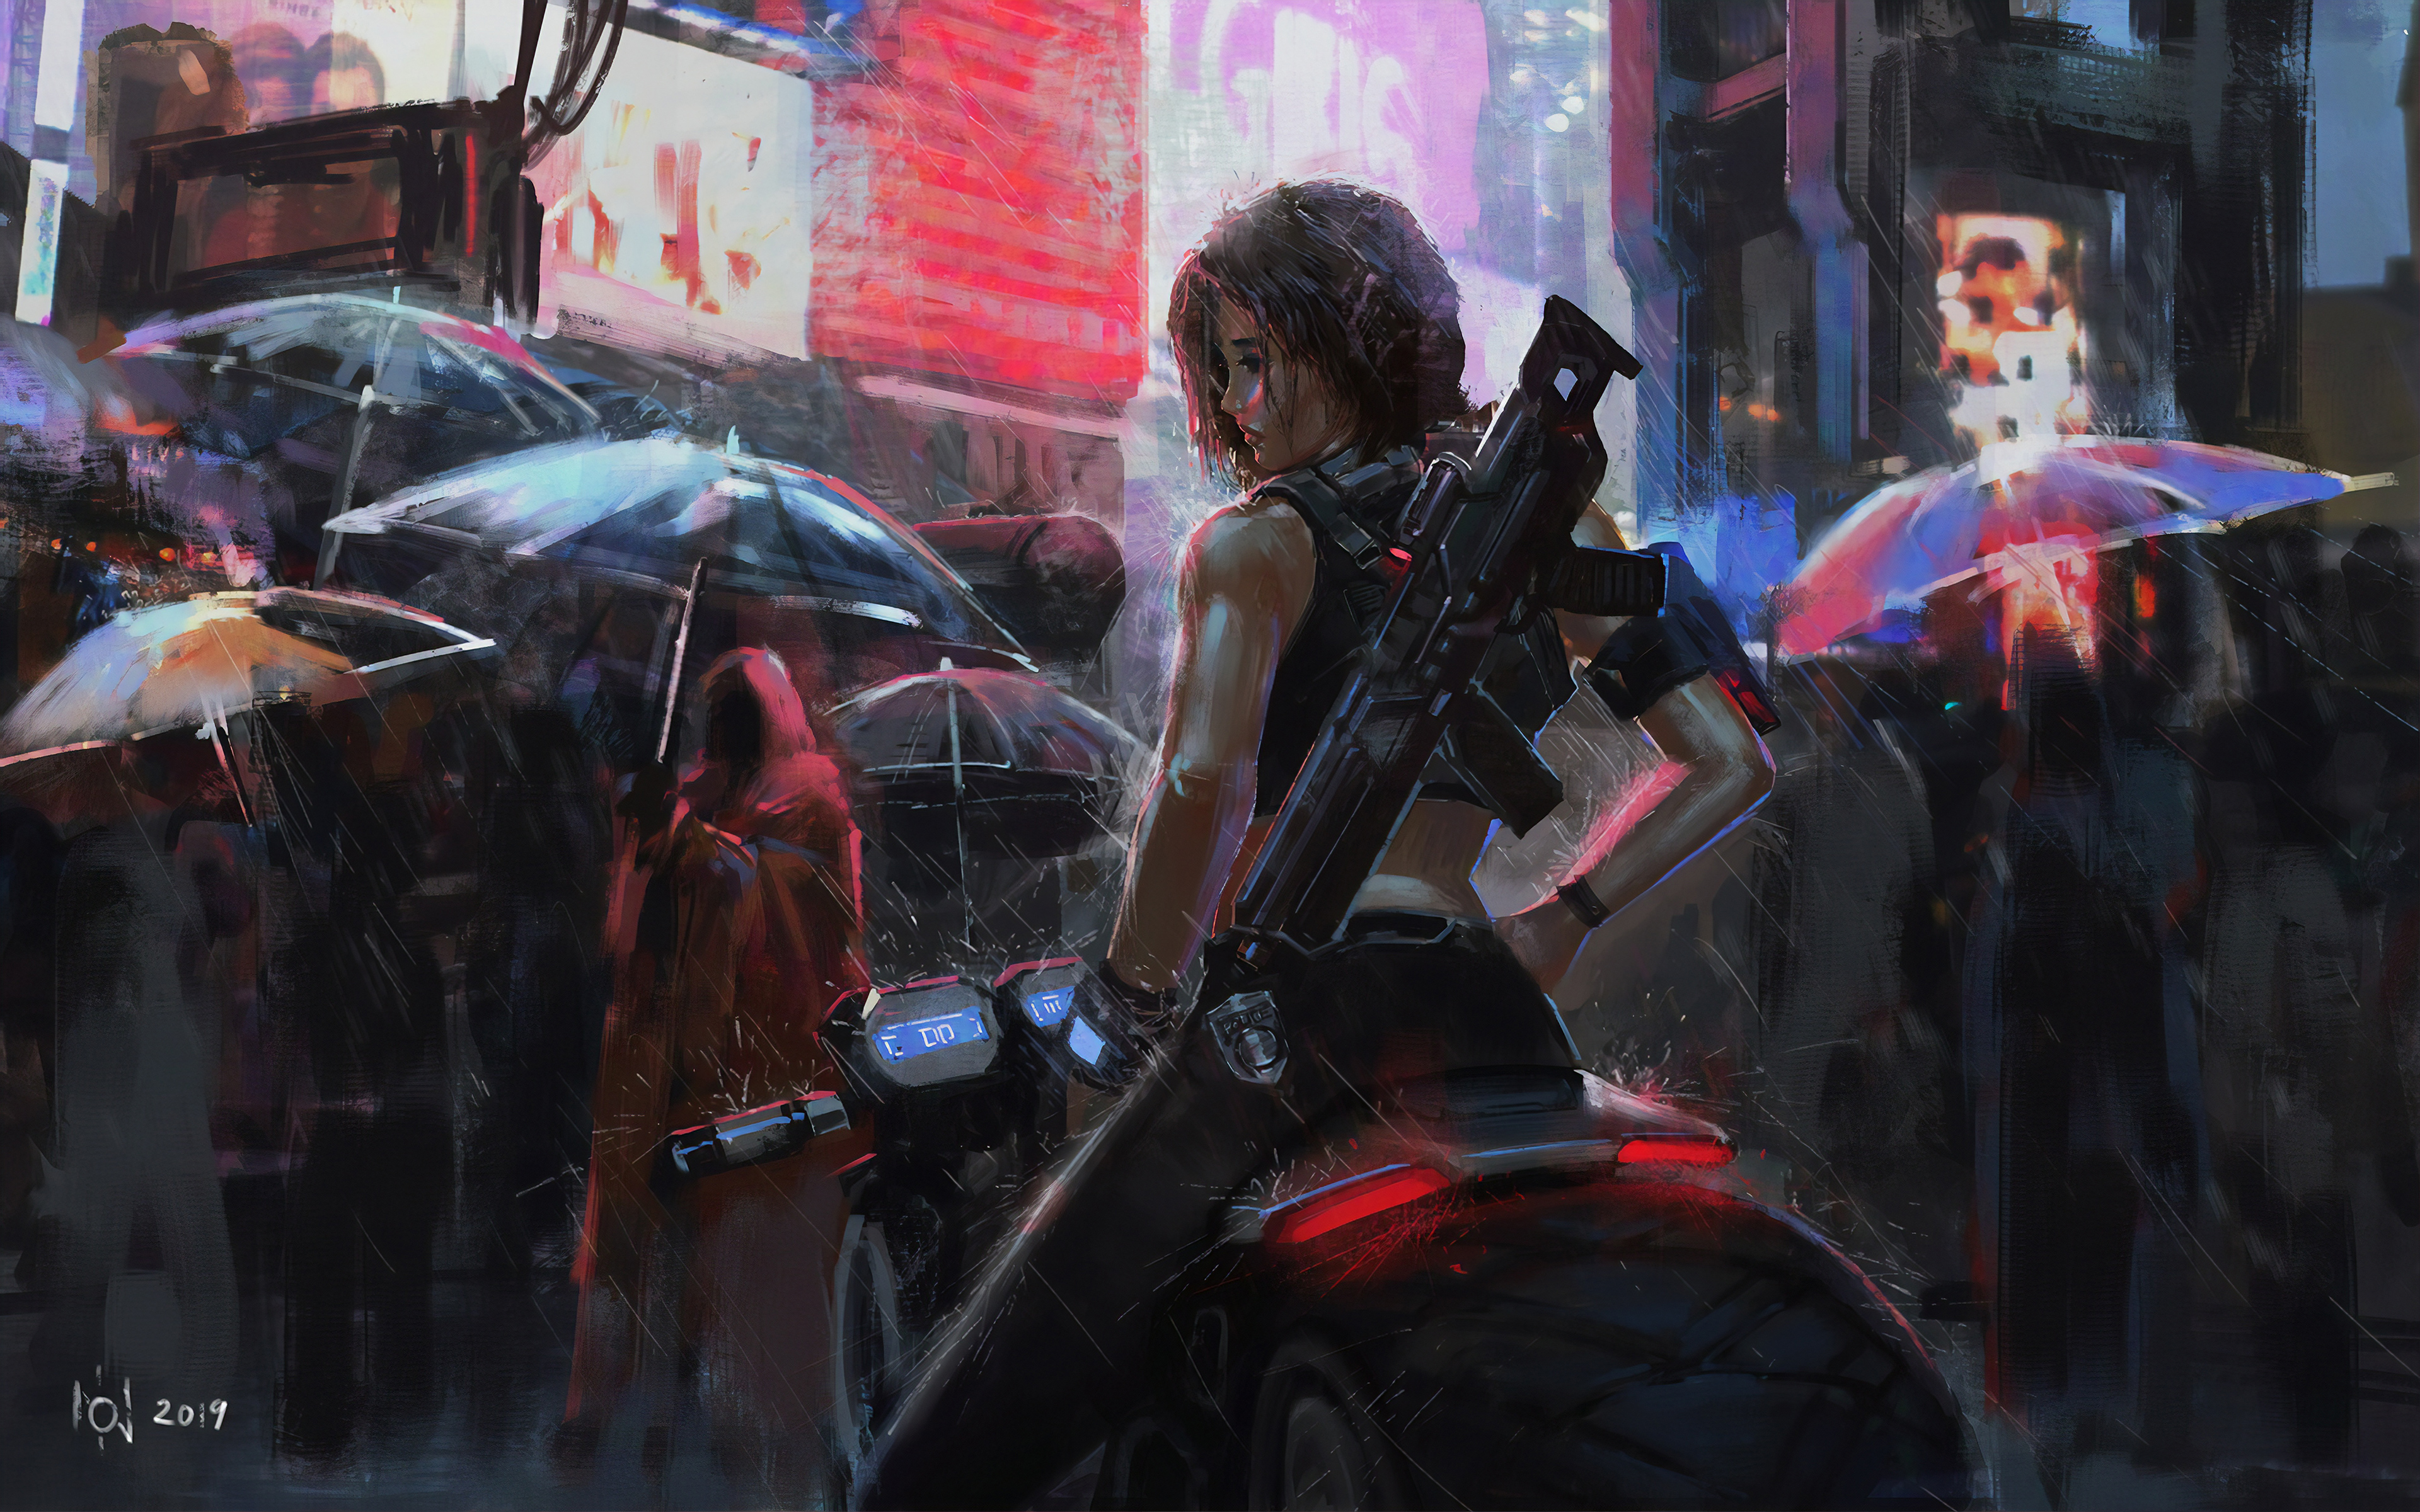 Neon Biker Girl Rain 4k Hd Anime 4k Wallpapers Images Backgrounds Photos And Pictures